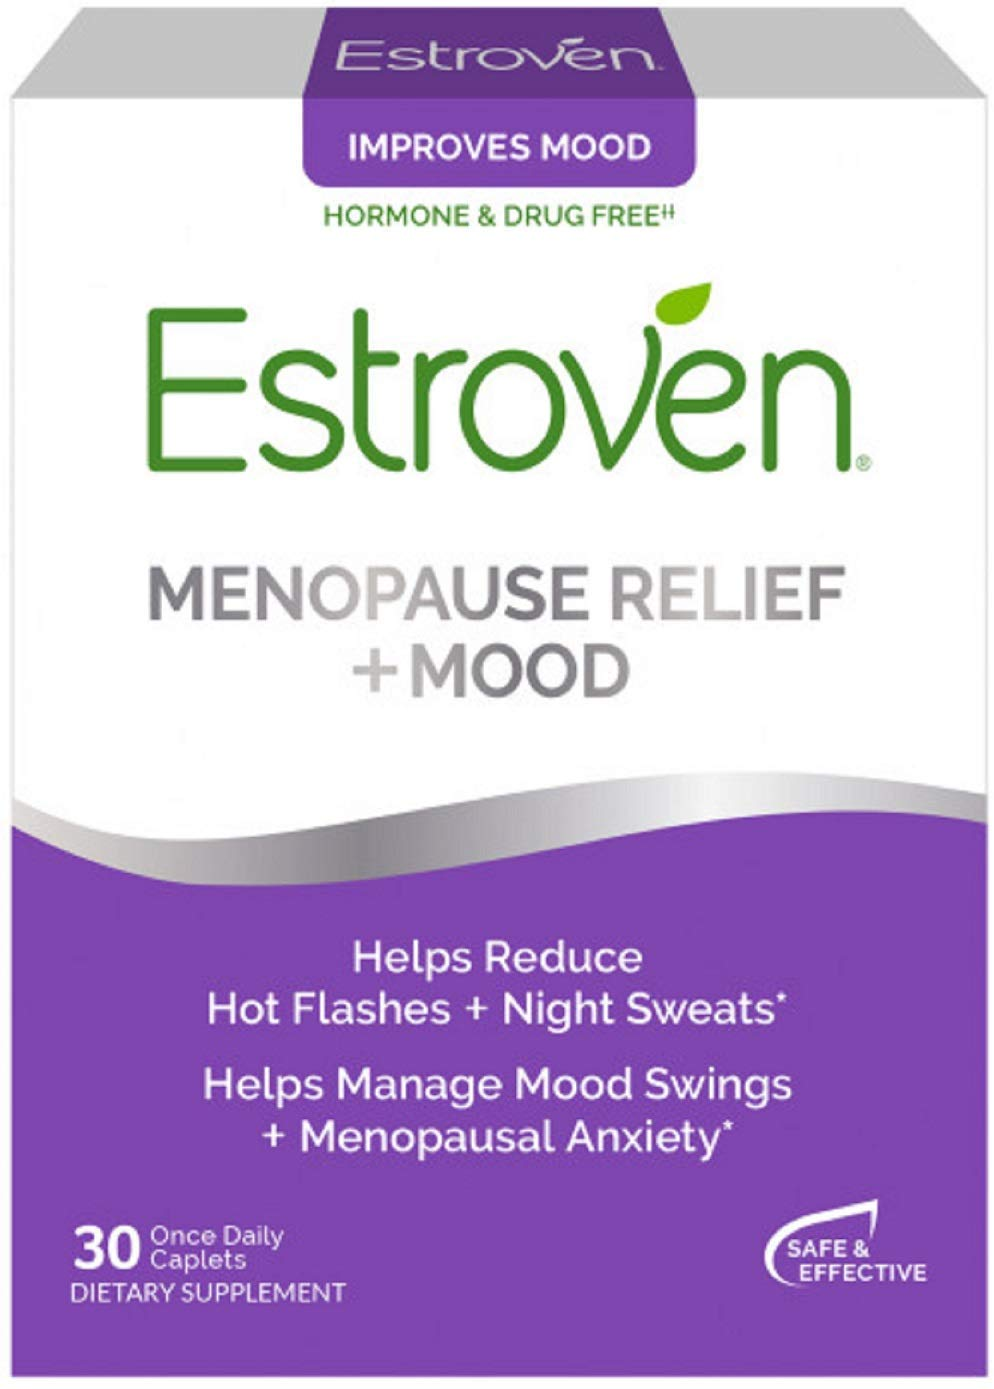 Estroven Stress Plus Mood & Memory - Menopause Relief Dietary Supplement - Multi-Symptom Relief - Helps Reduce Hot Flashes & Night Sweats* - Helps Manage Daily Stress & Mood* - 30 Caplets